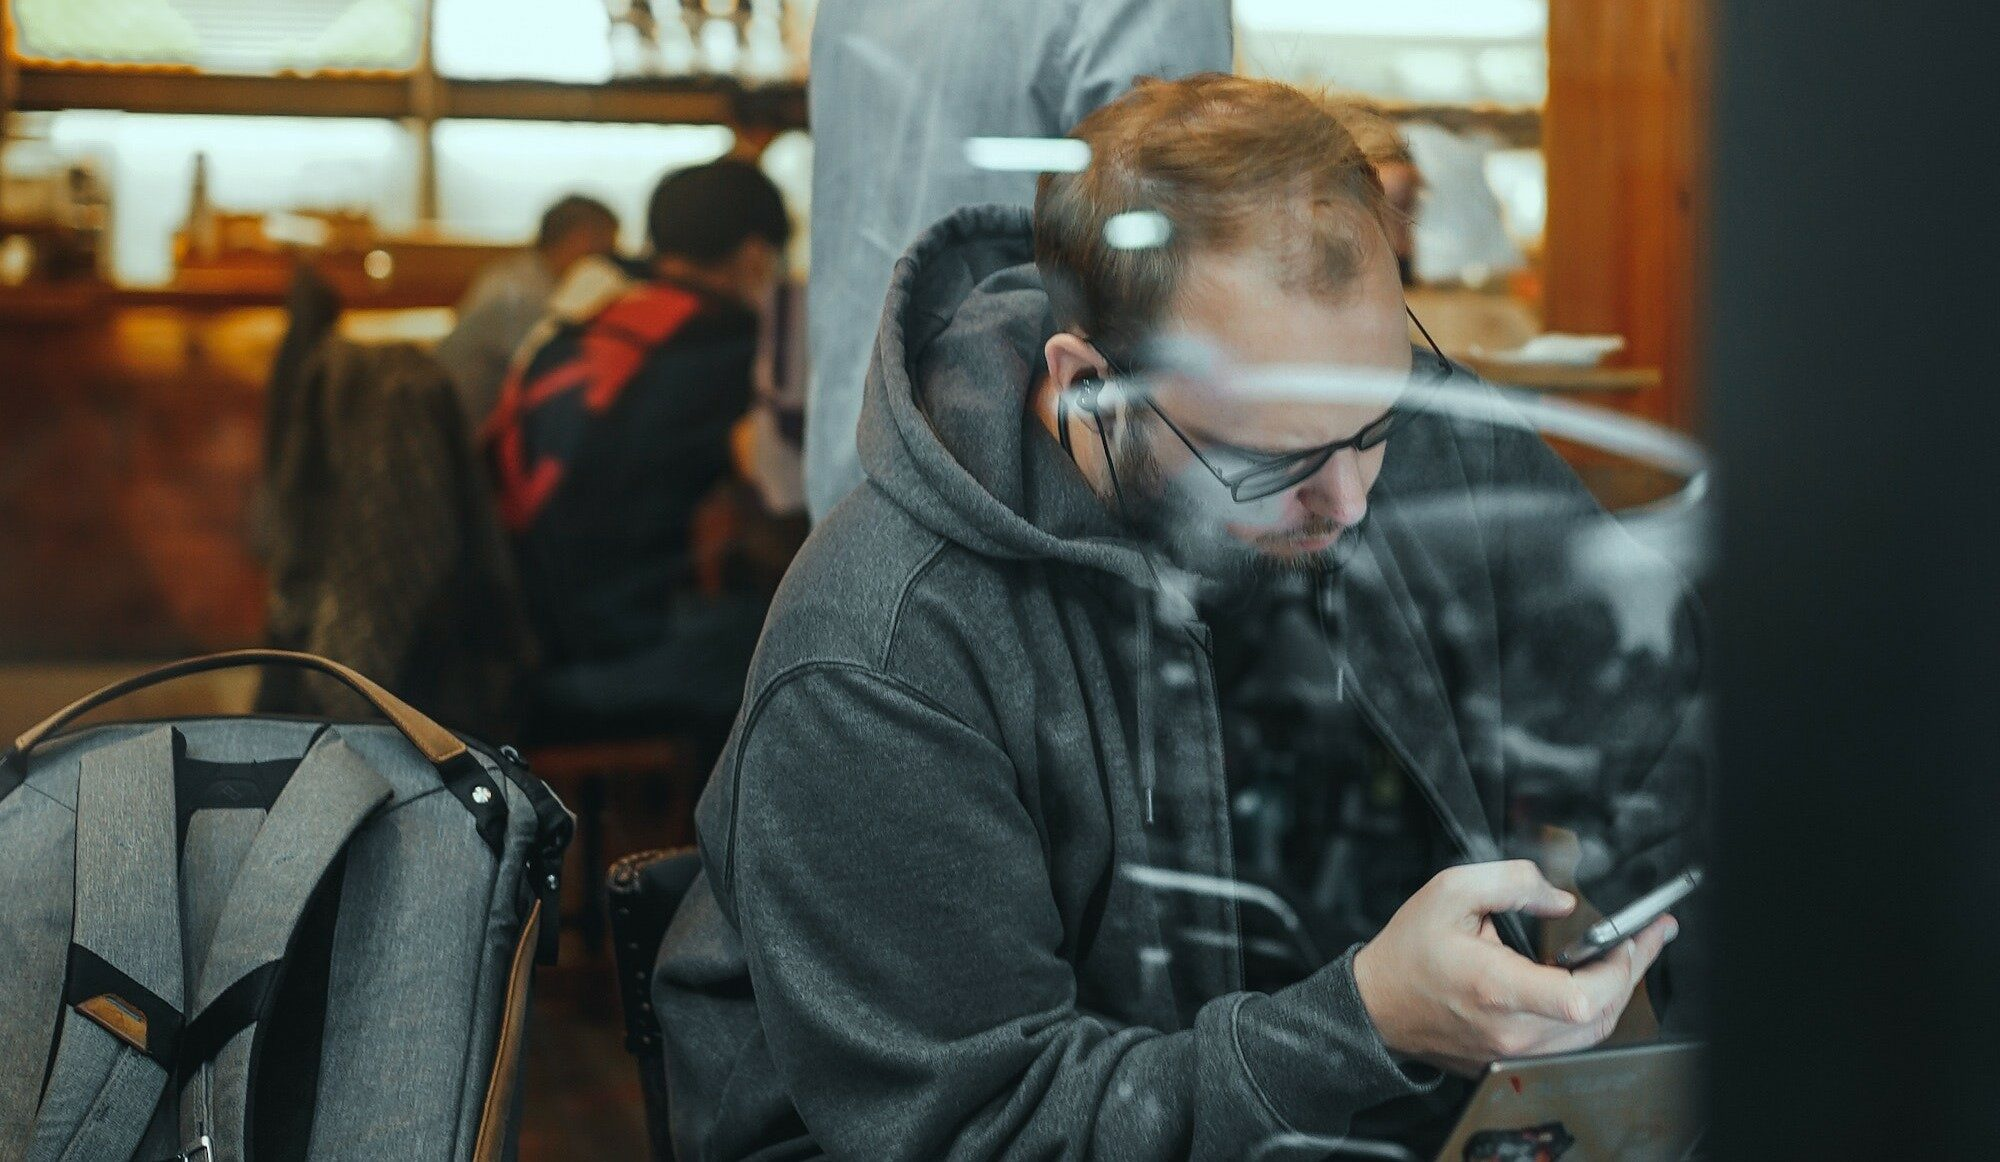 A man in a grey sweatshirt, wearing black ear buds, scrolls through his phone with his laptop open in front of him. On the chair to his left sits a grey and brown backpack. Behind him, the movement of what looks to be a busy cafe